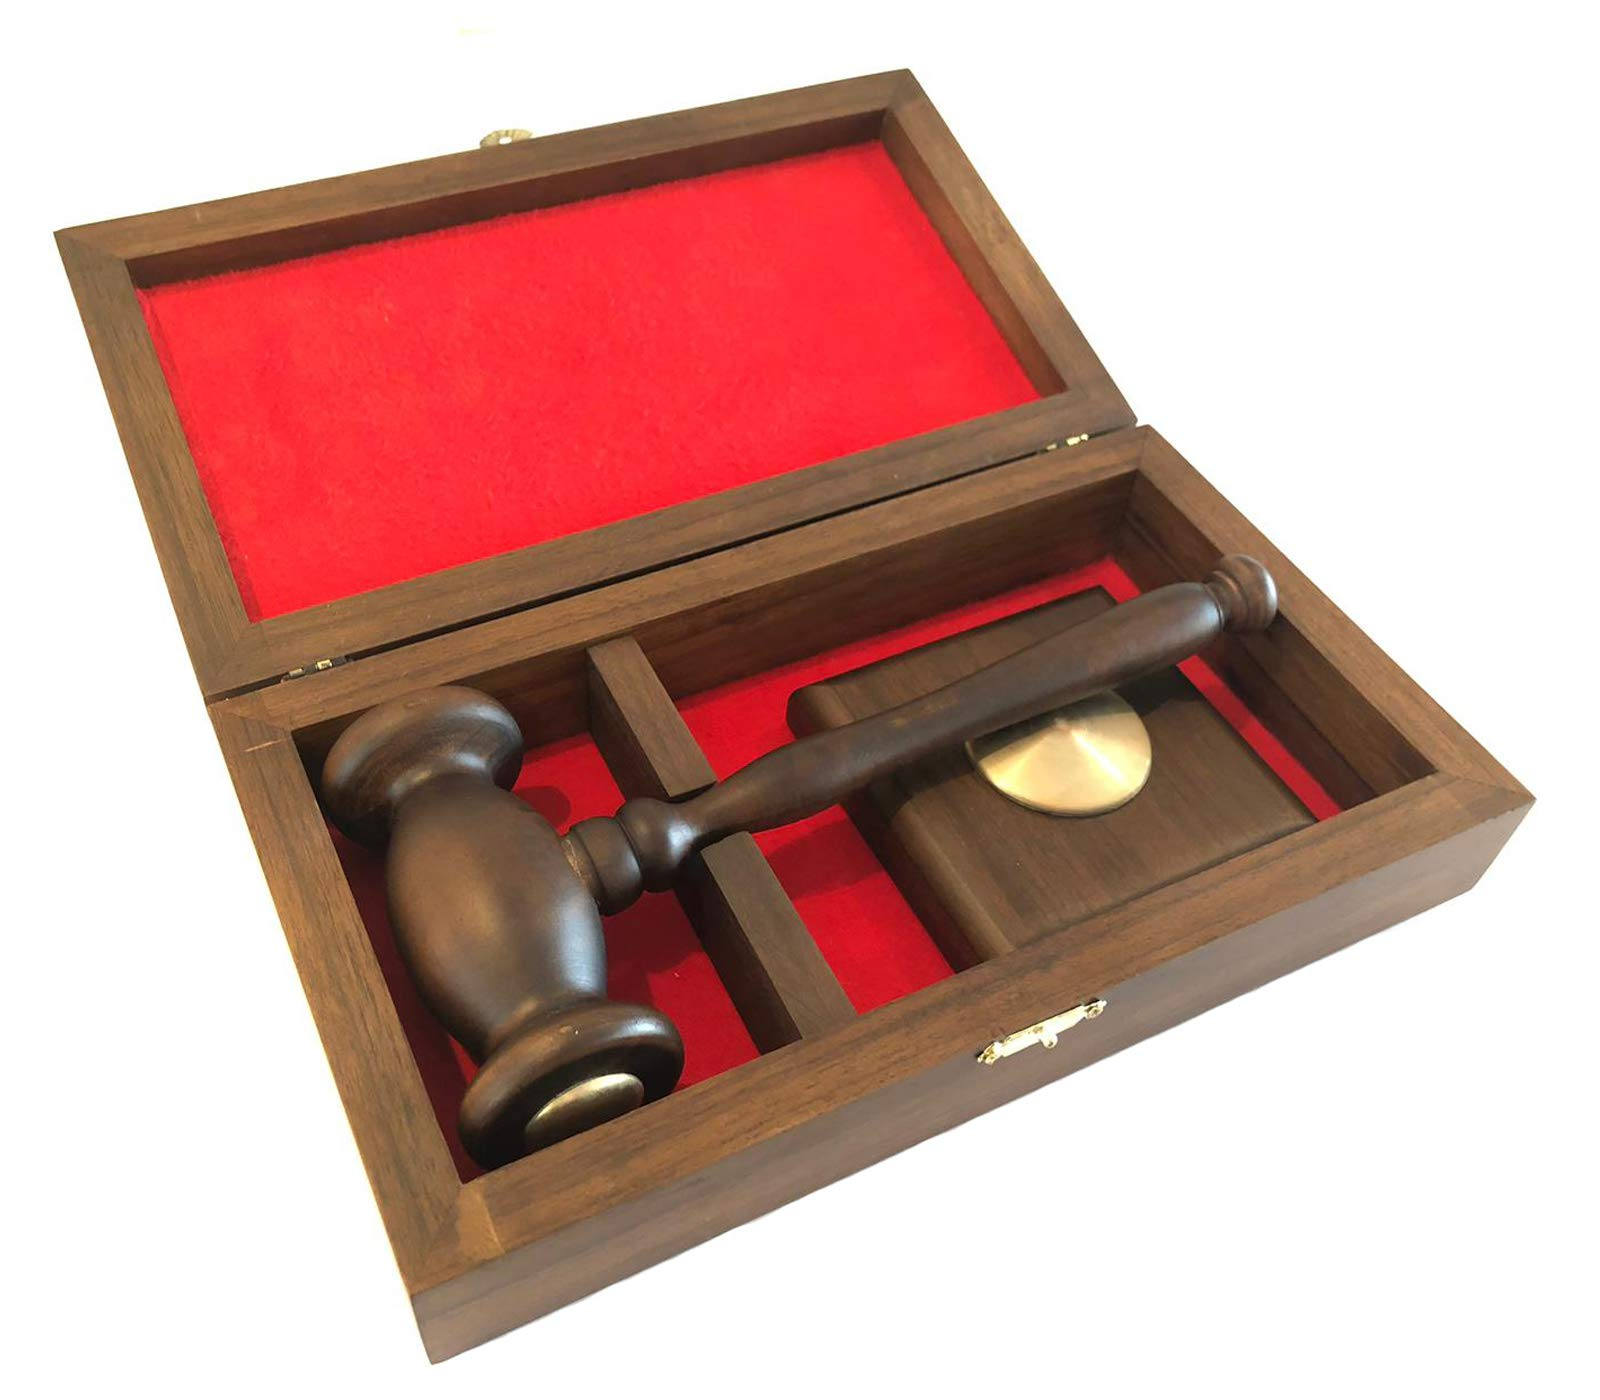 Deluxe Boxed Gavel Square Brass Block Set - Stylish Design - Handmade Quality Wooden Boxed - 9 Inch High Gloss Walnut Finish Gavel & Block 10.6x6.1x2.7 Inch - Perfect Gift Idea